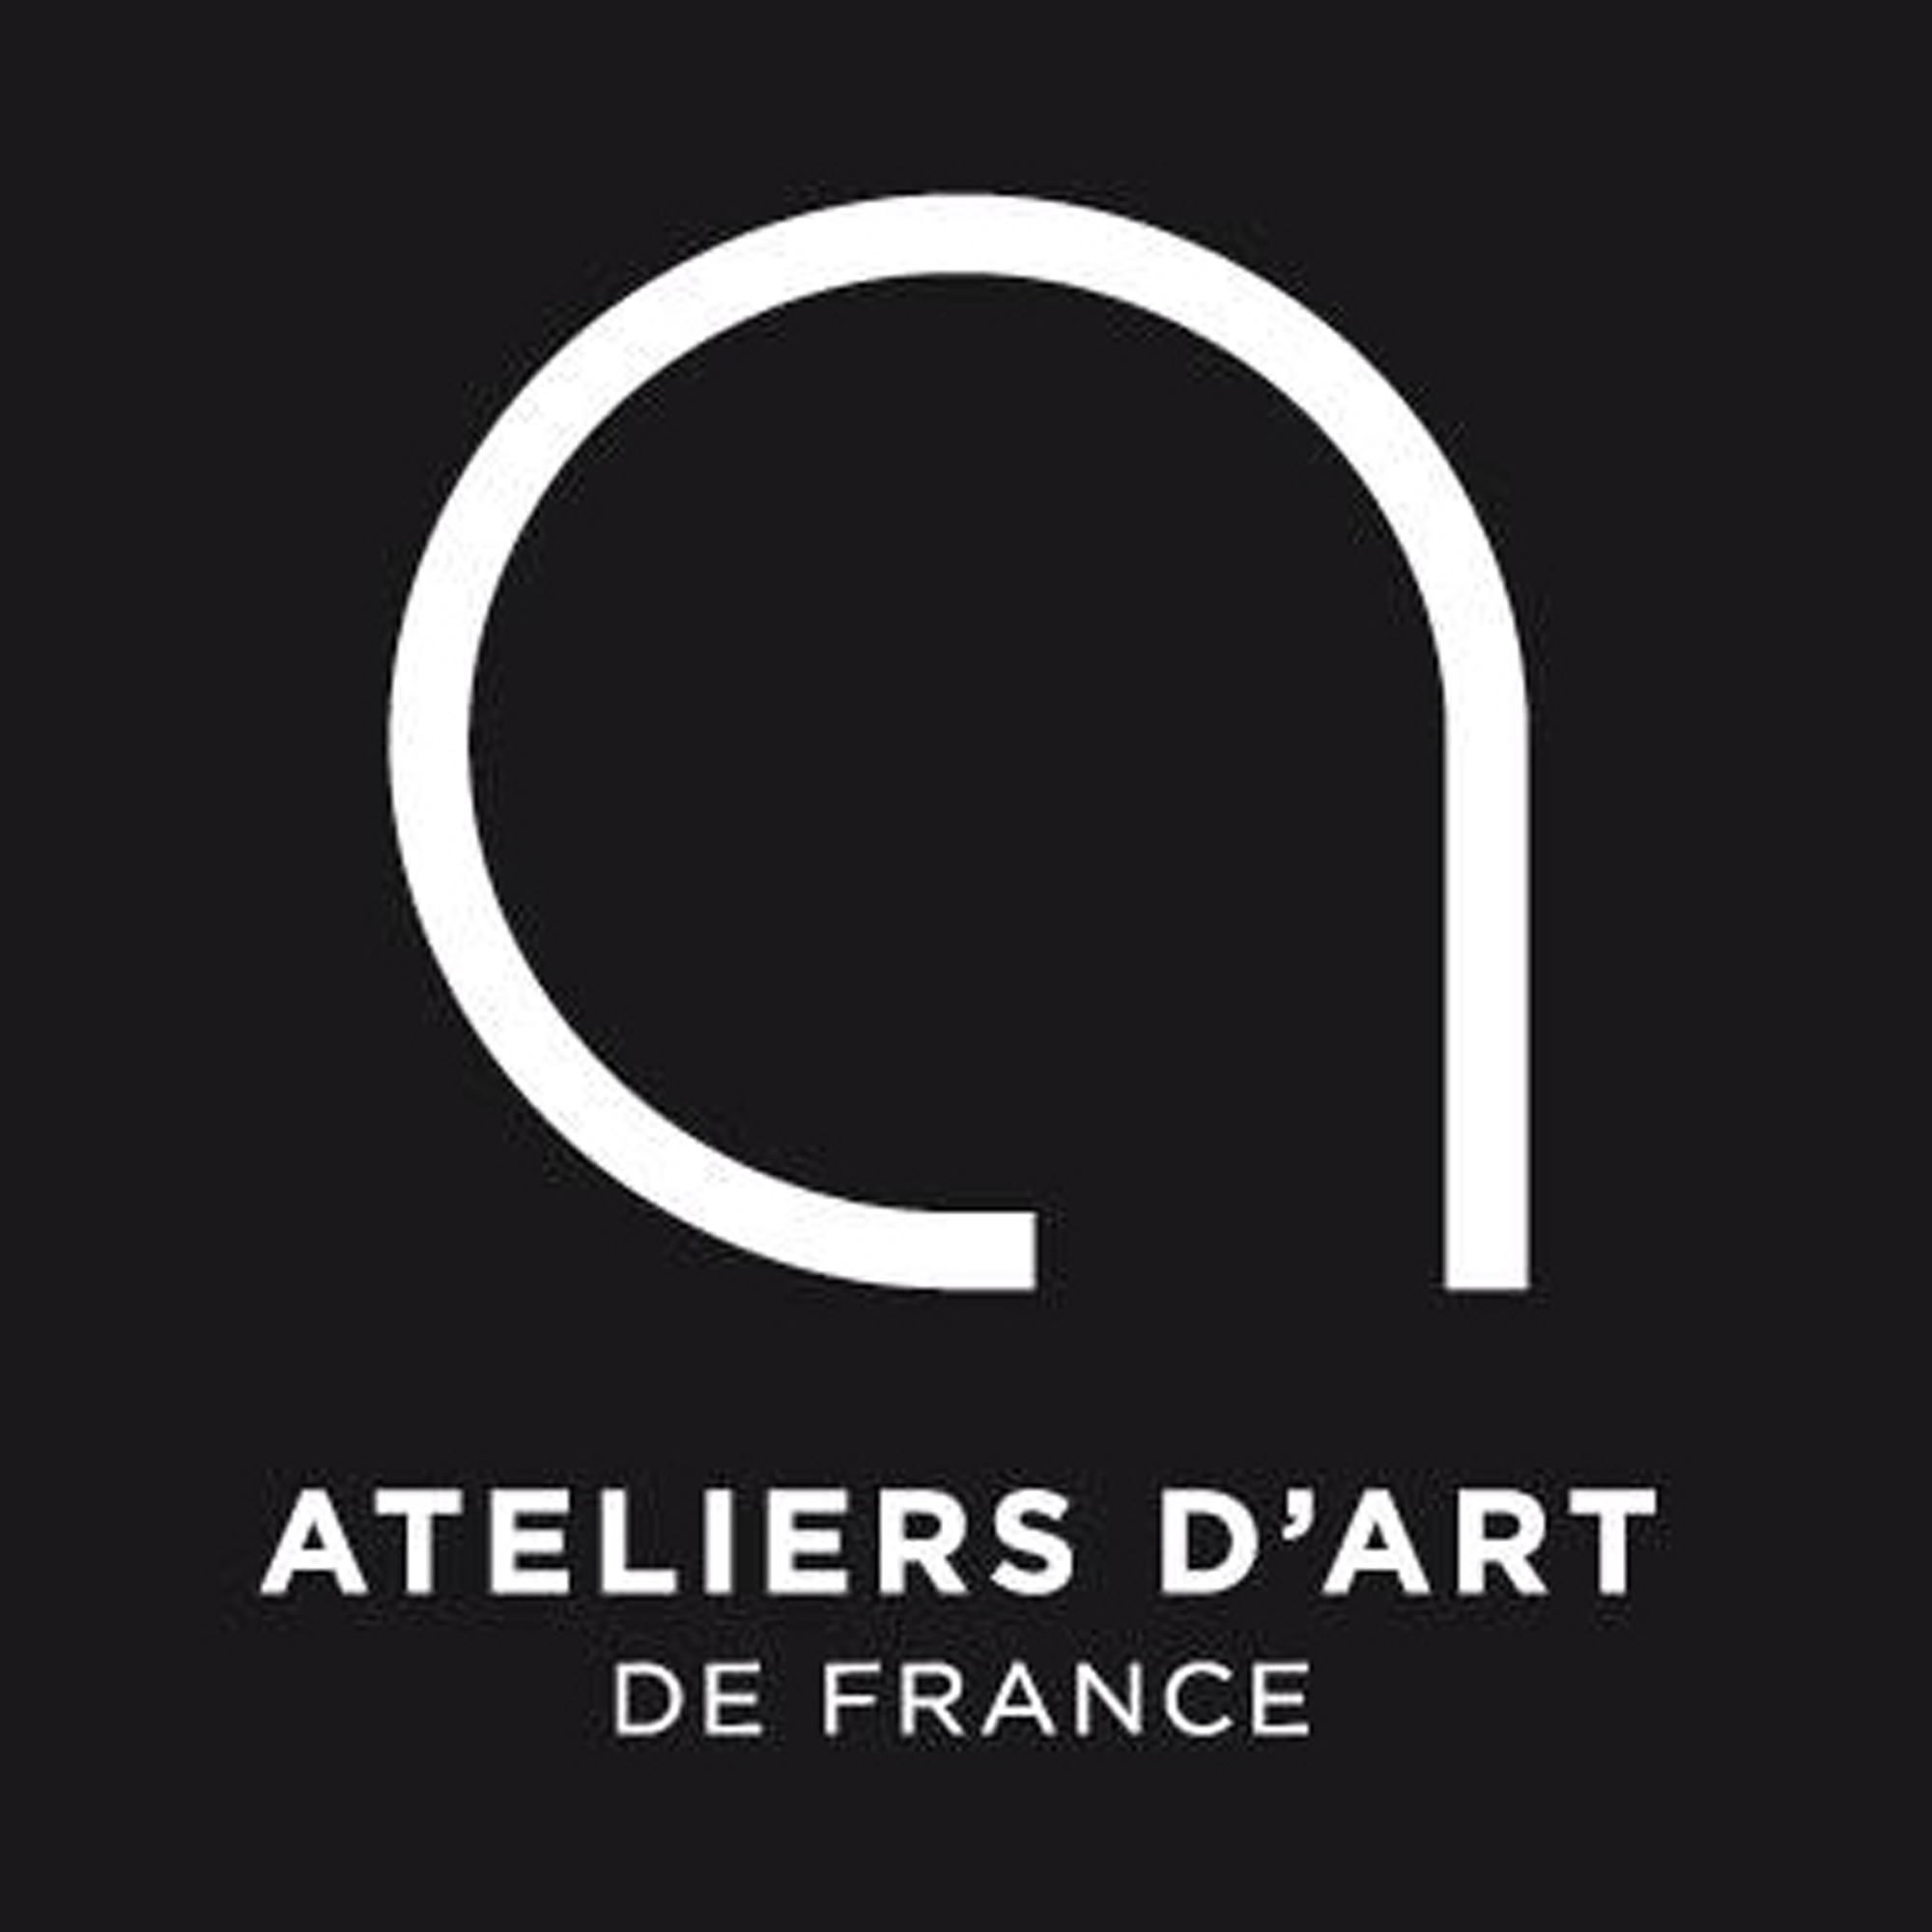 Minicyn is a member of Atelier d'Art de France 2019 - Find more information about them HERE